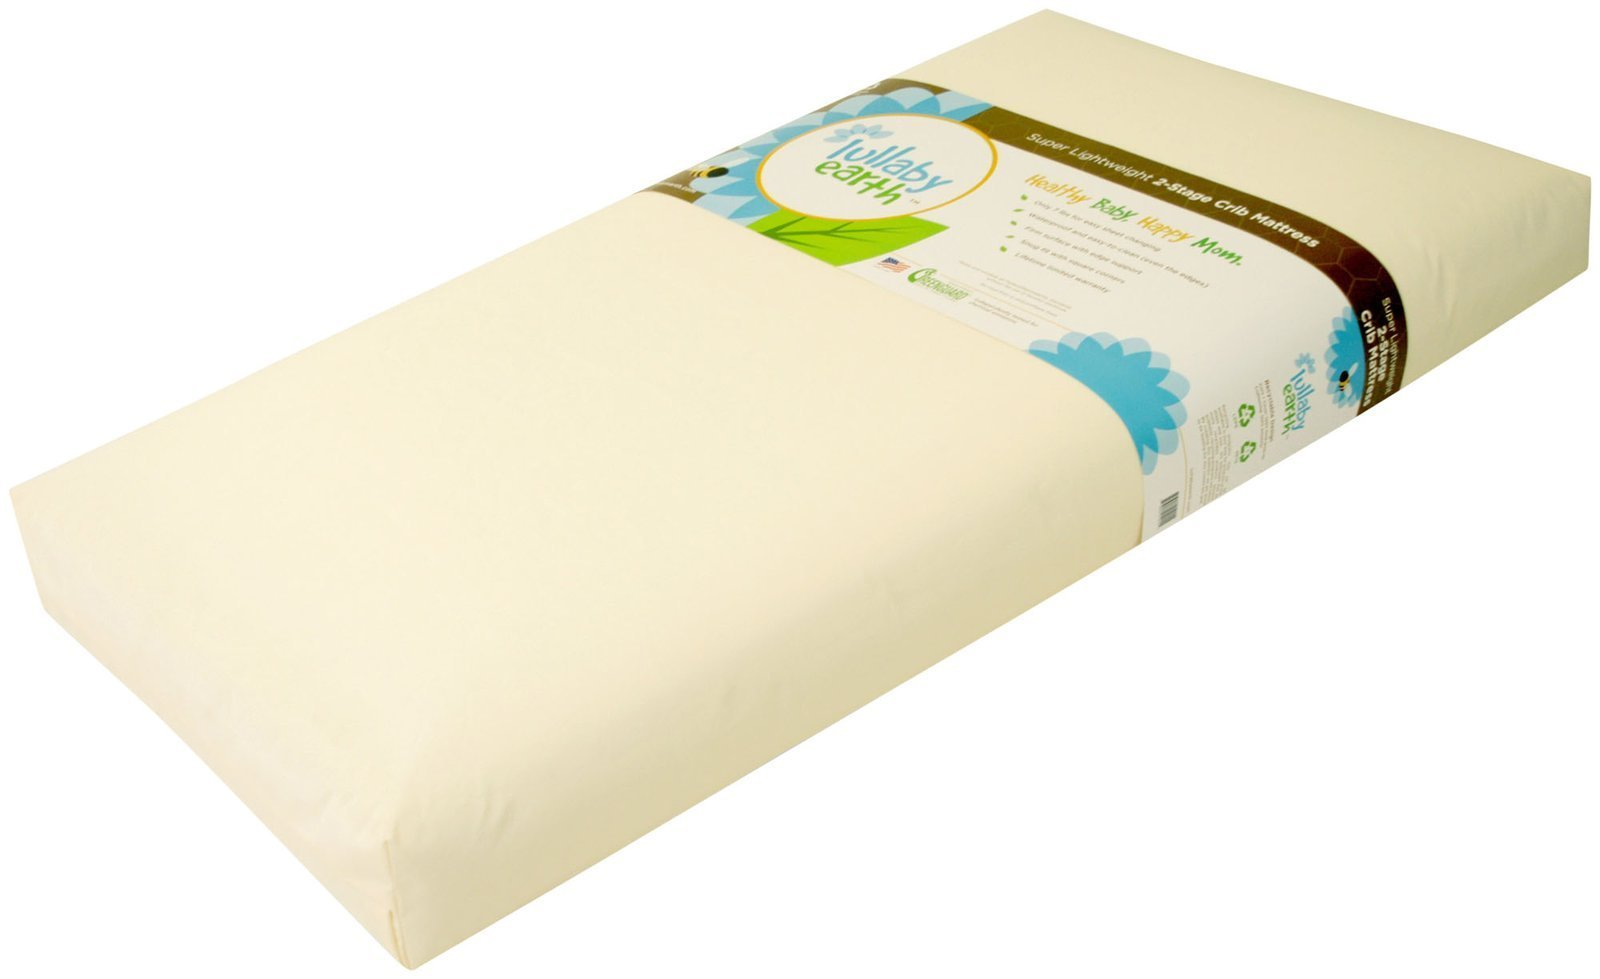 Lullaby Earth Healthy Support Crib Mattress 2-stage by Lullaby Earth (Image #3)